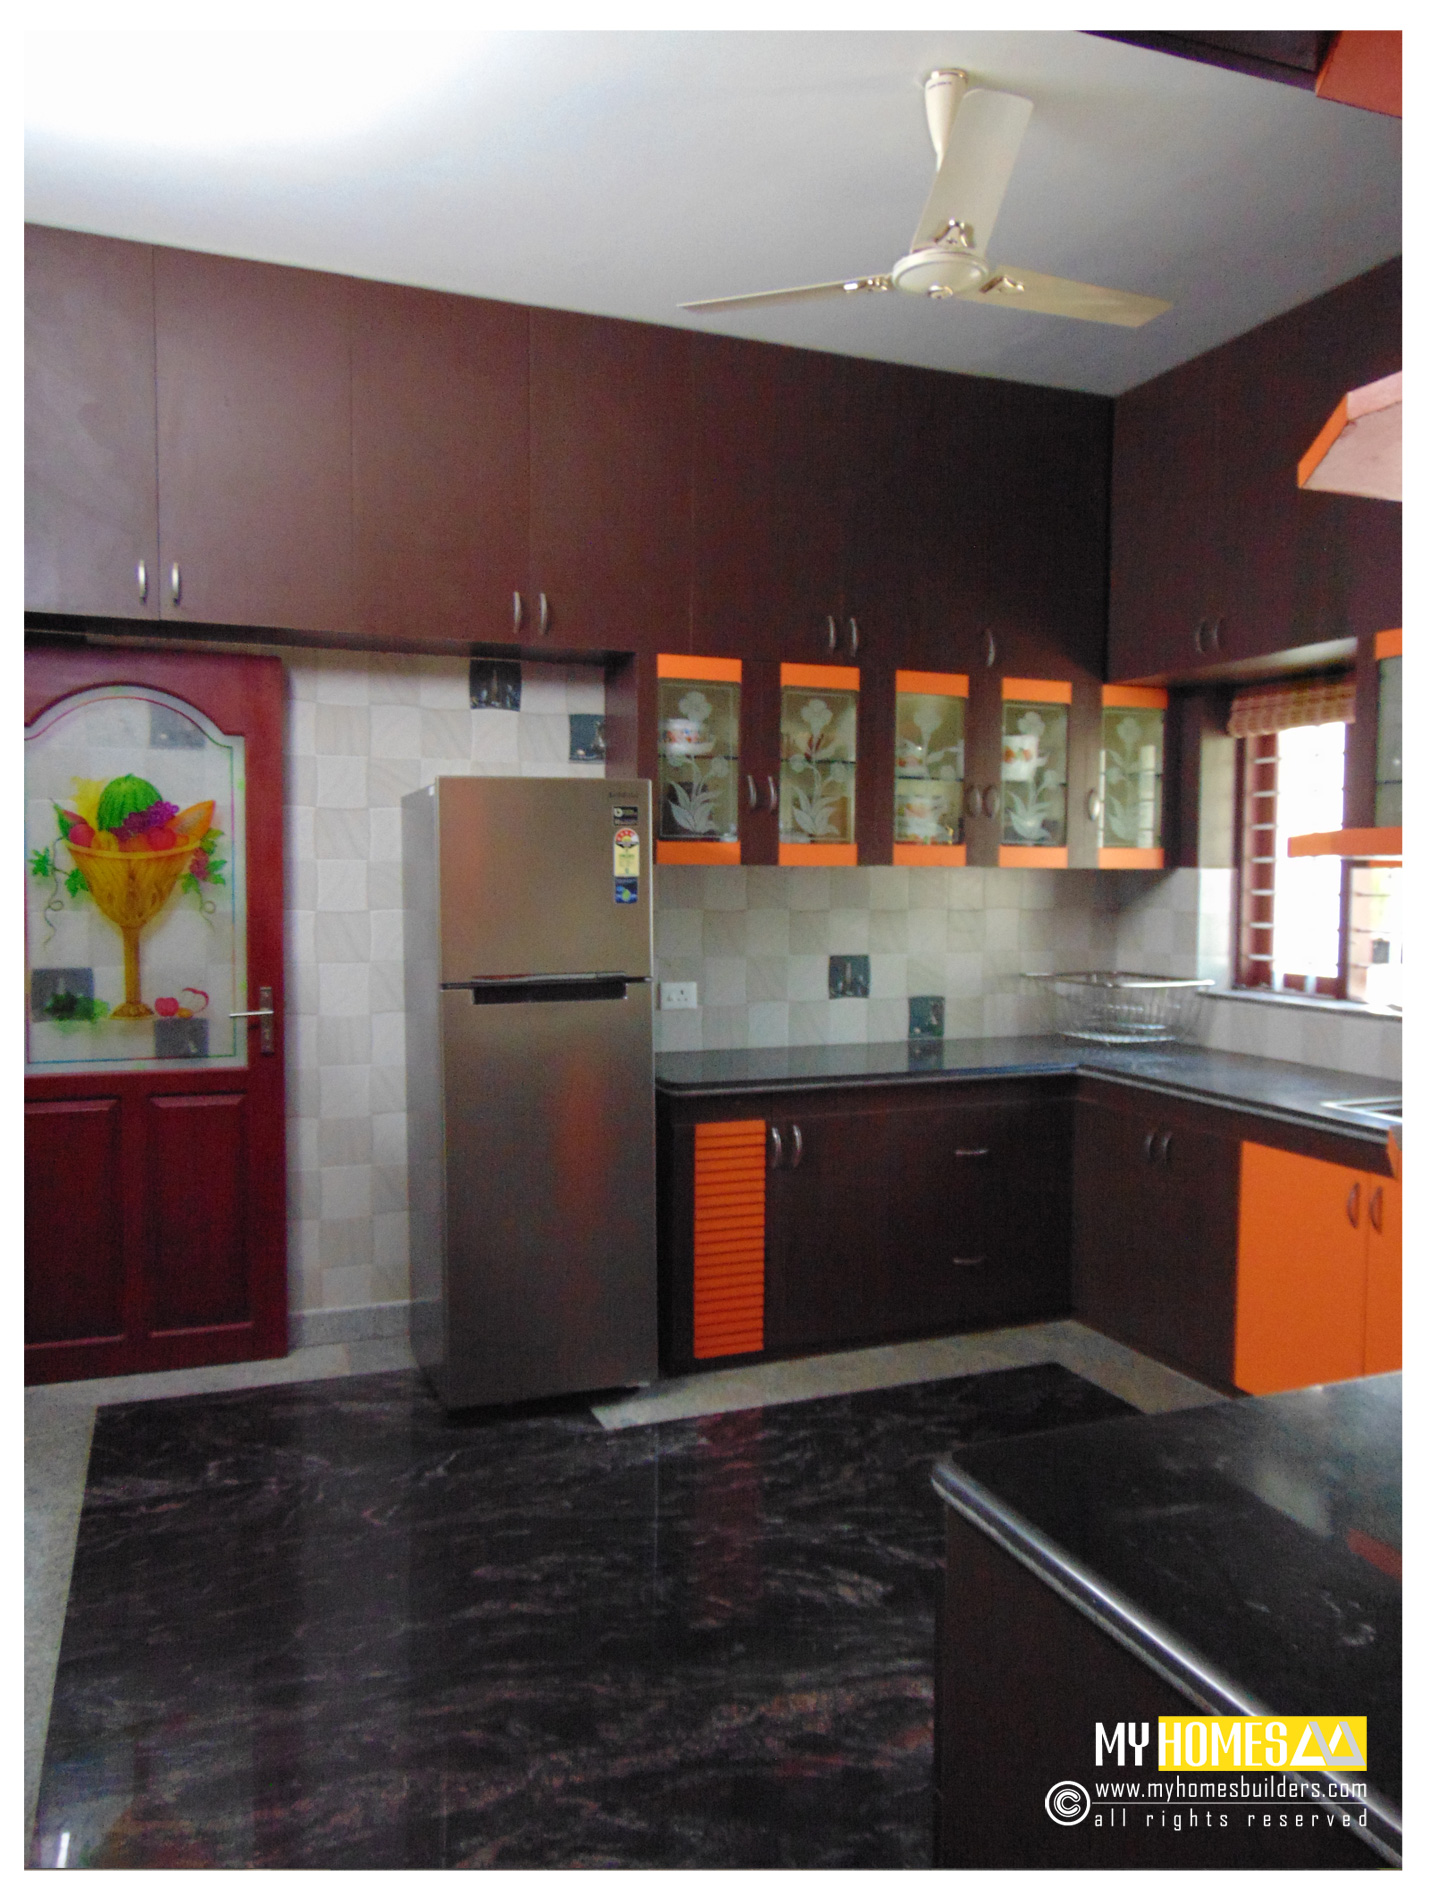 Kerala kitchen designs idea in modular style for house in for Kitchen interior images